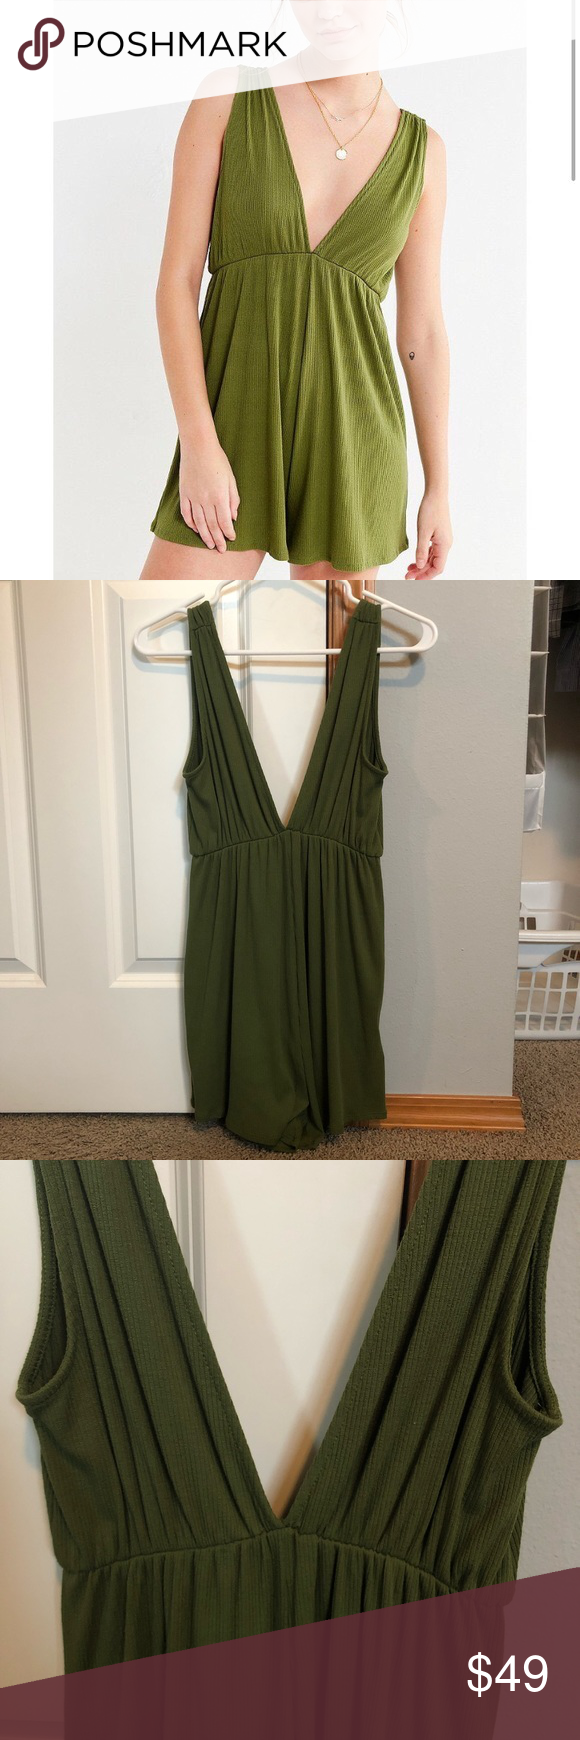 96323bdb52fc UO Ribbed Knit Plunging Babydoll Romper Only worn once and in like new  condition! Sooo